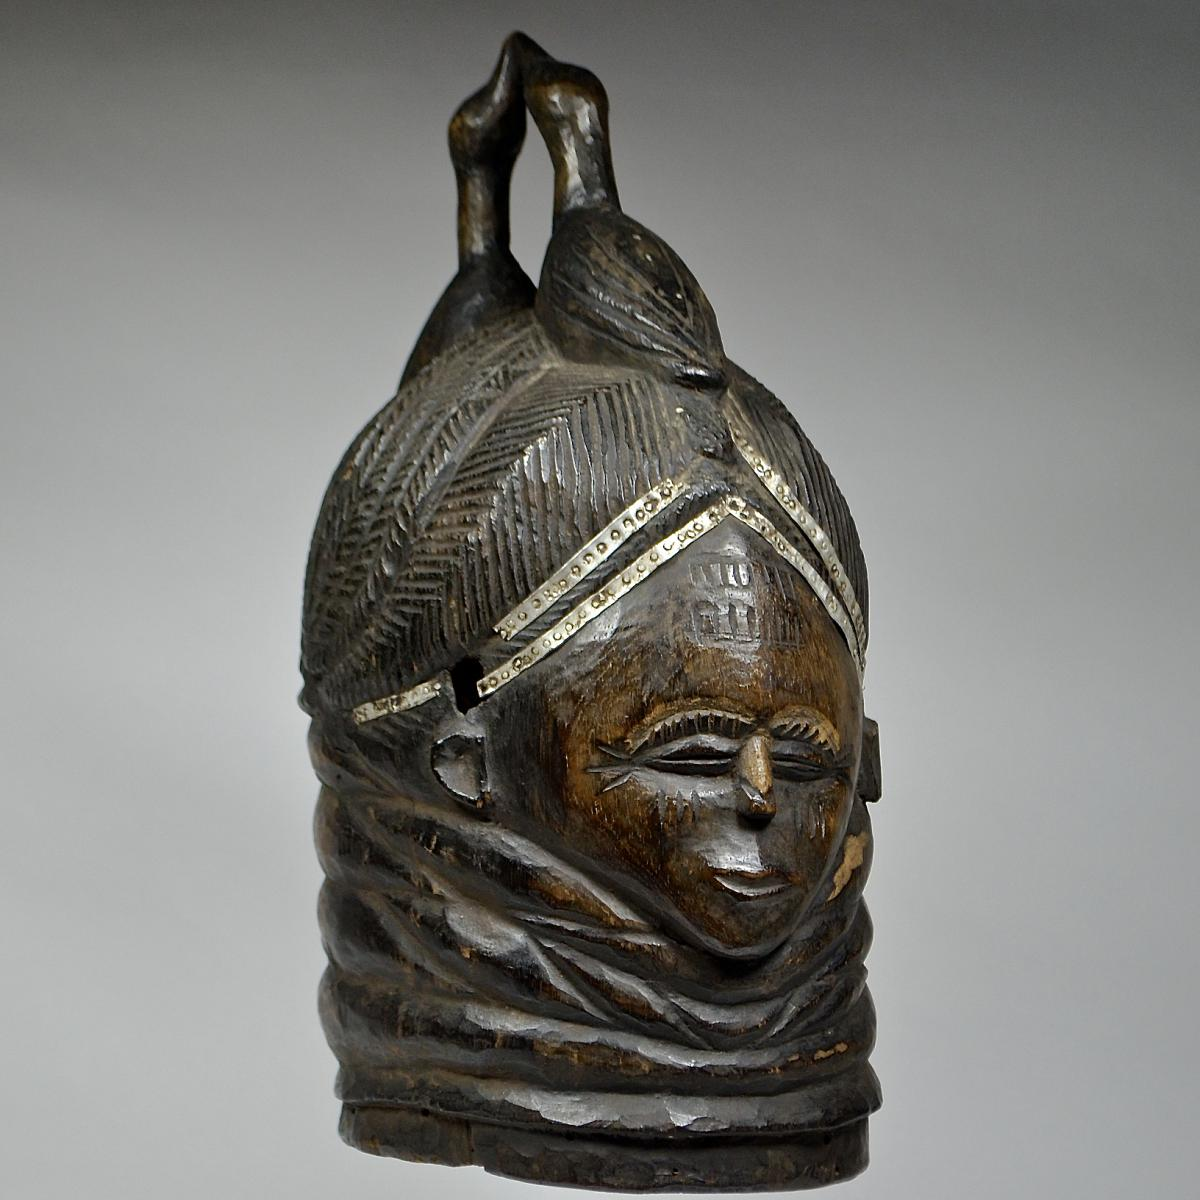 Sowei mask from the Sande society